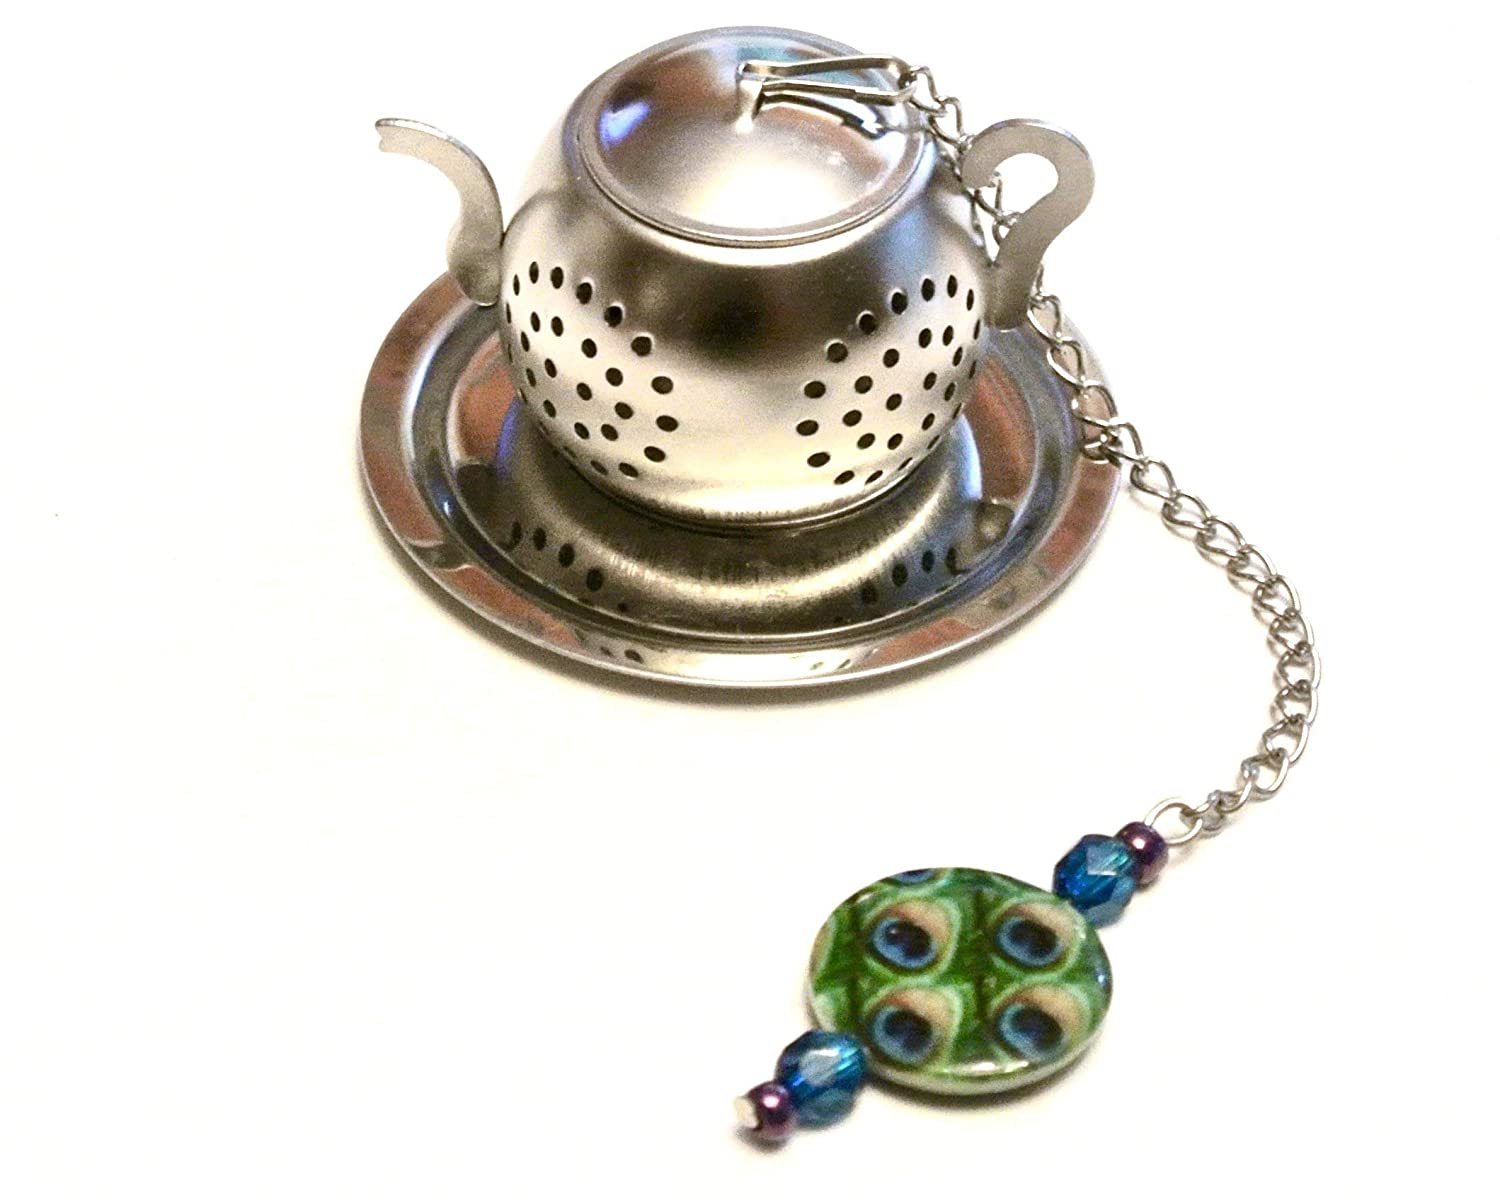 Peacock Feather Tea Infuser with Blue, Green, and Purple